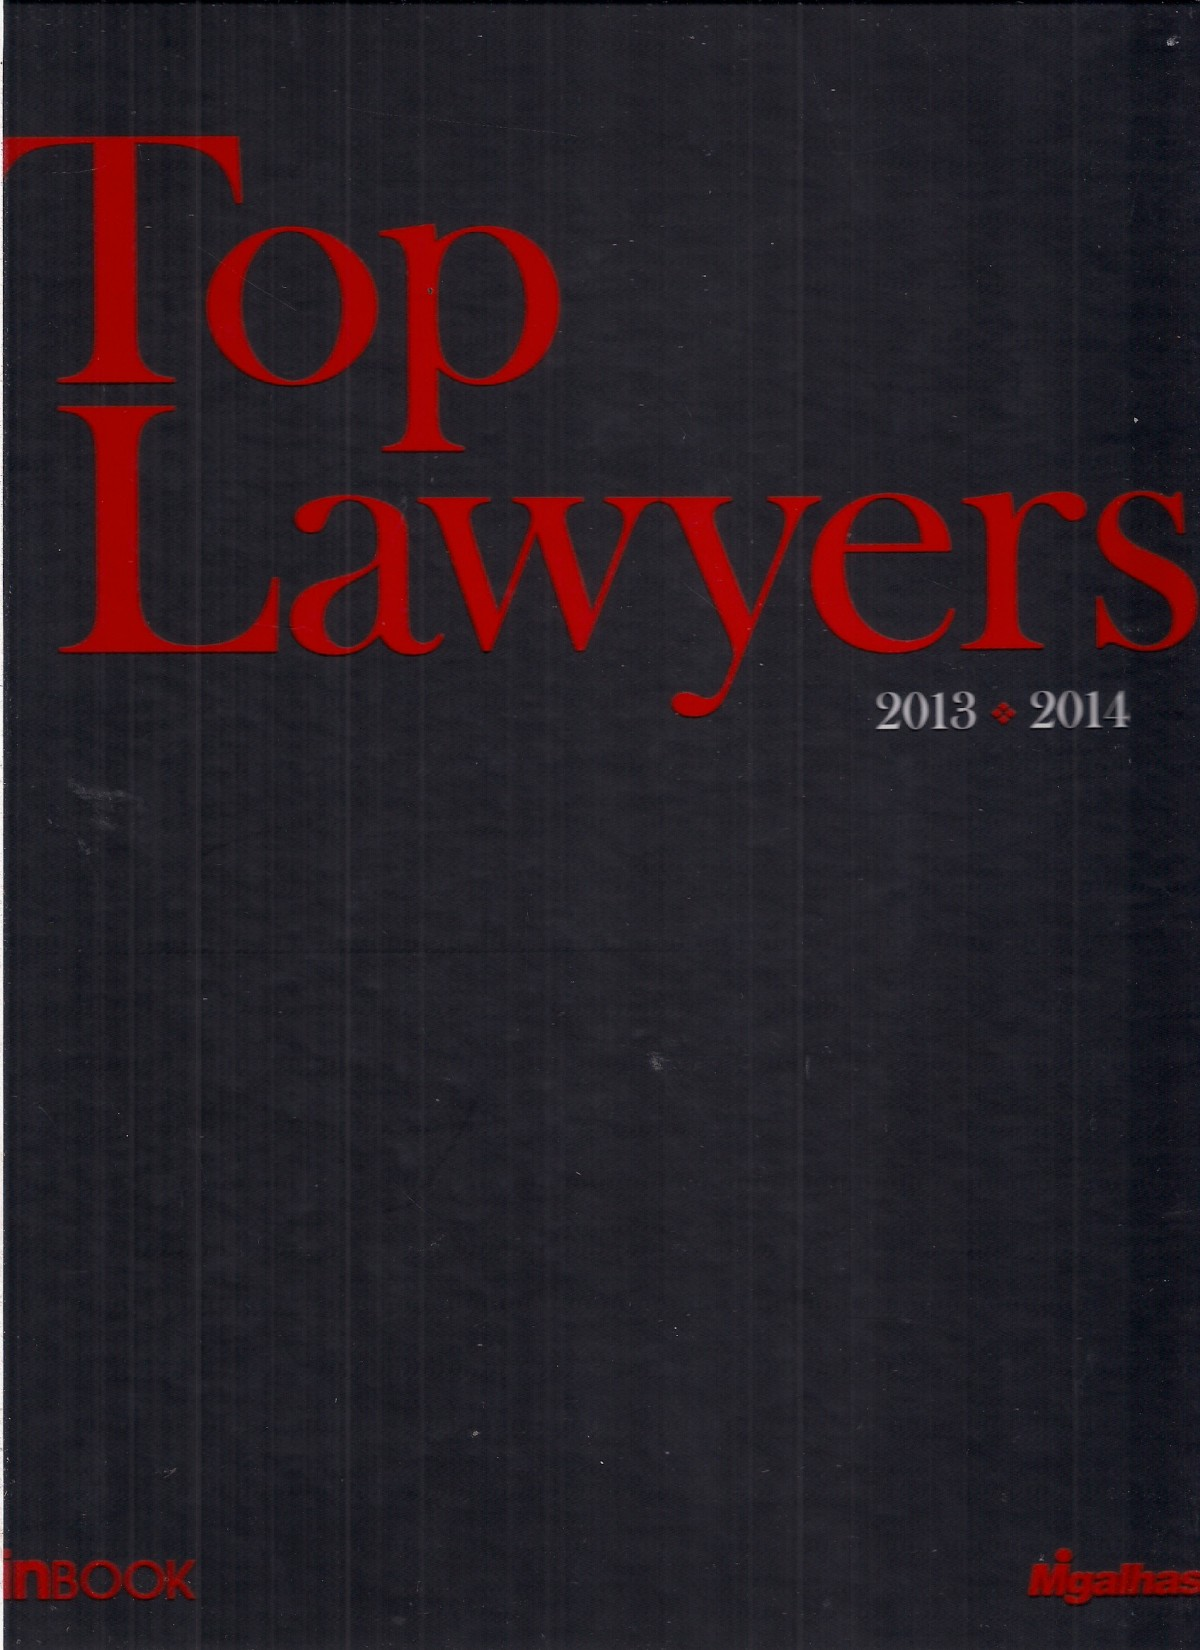 Foto 1 - Top Lawyers 2013 - 2014